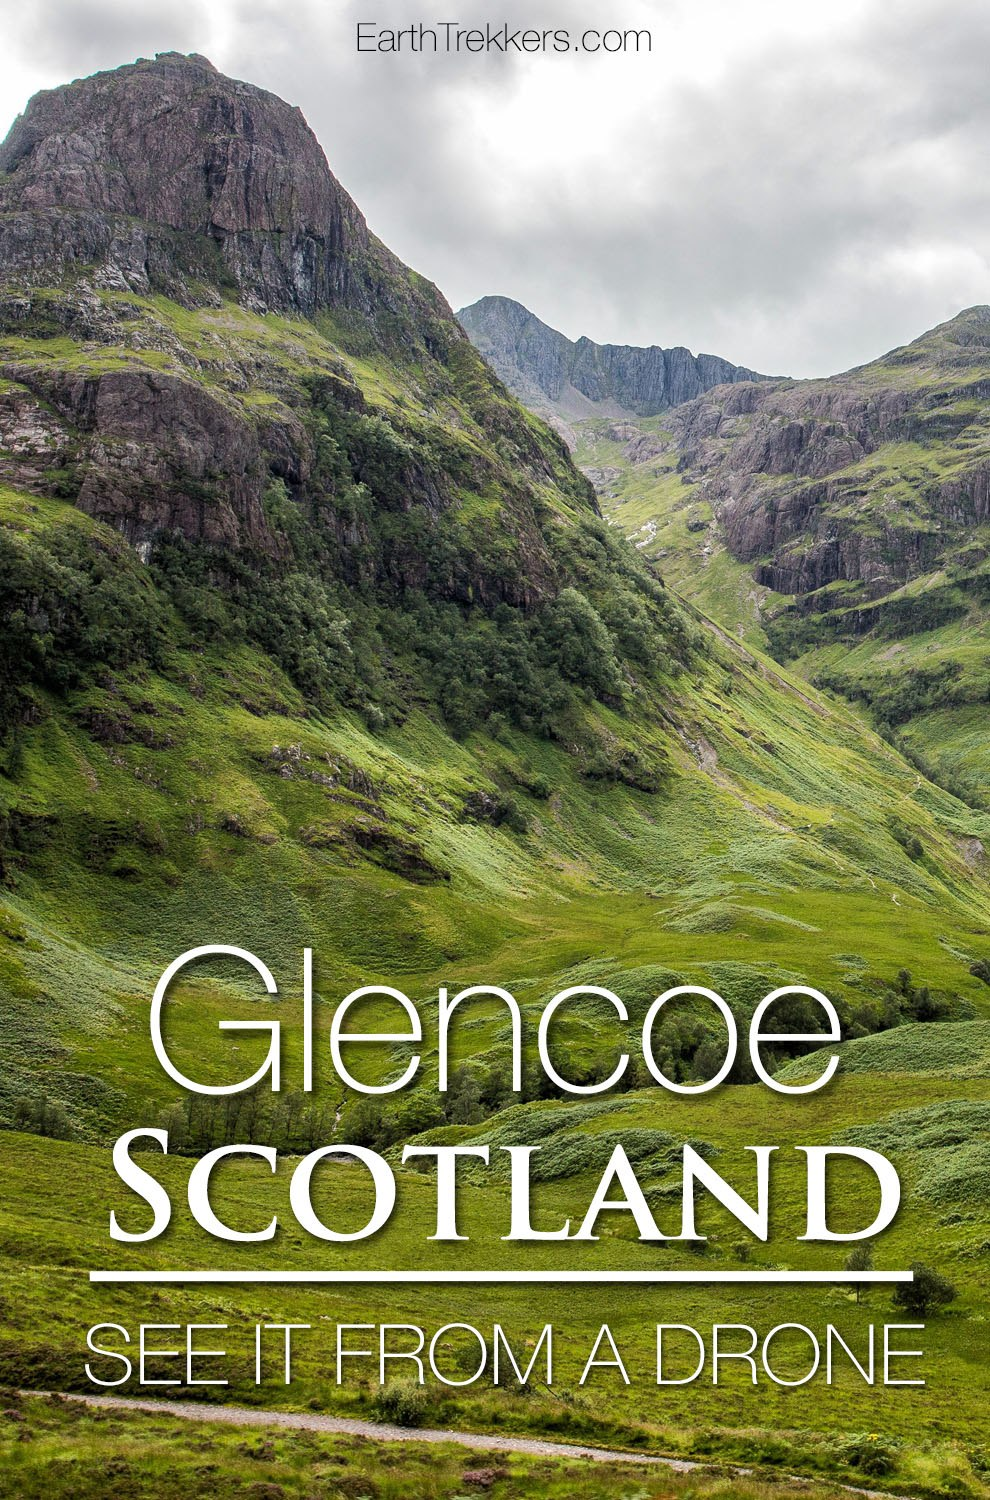 Glencoe Scotland Drone Photos